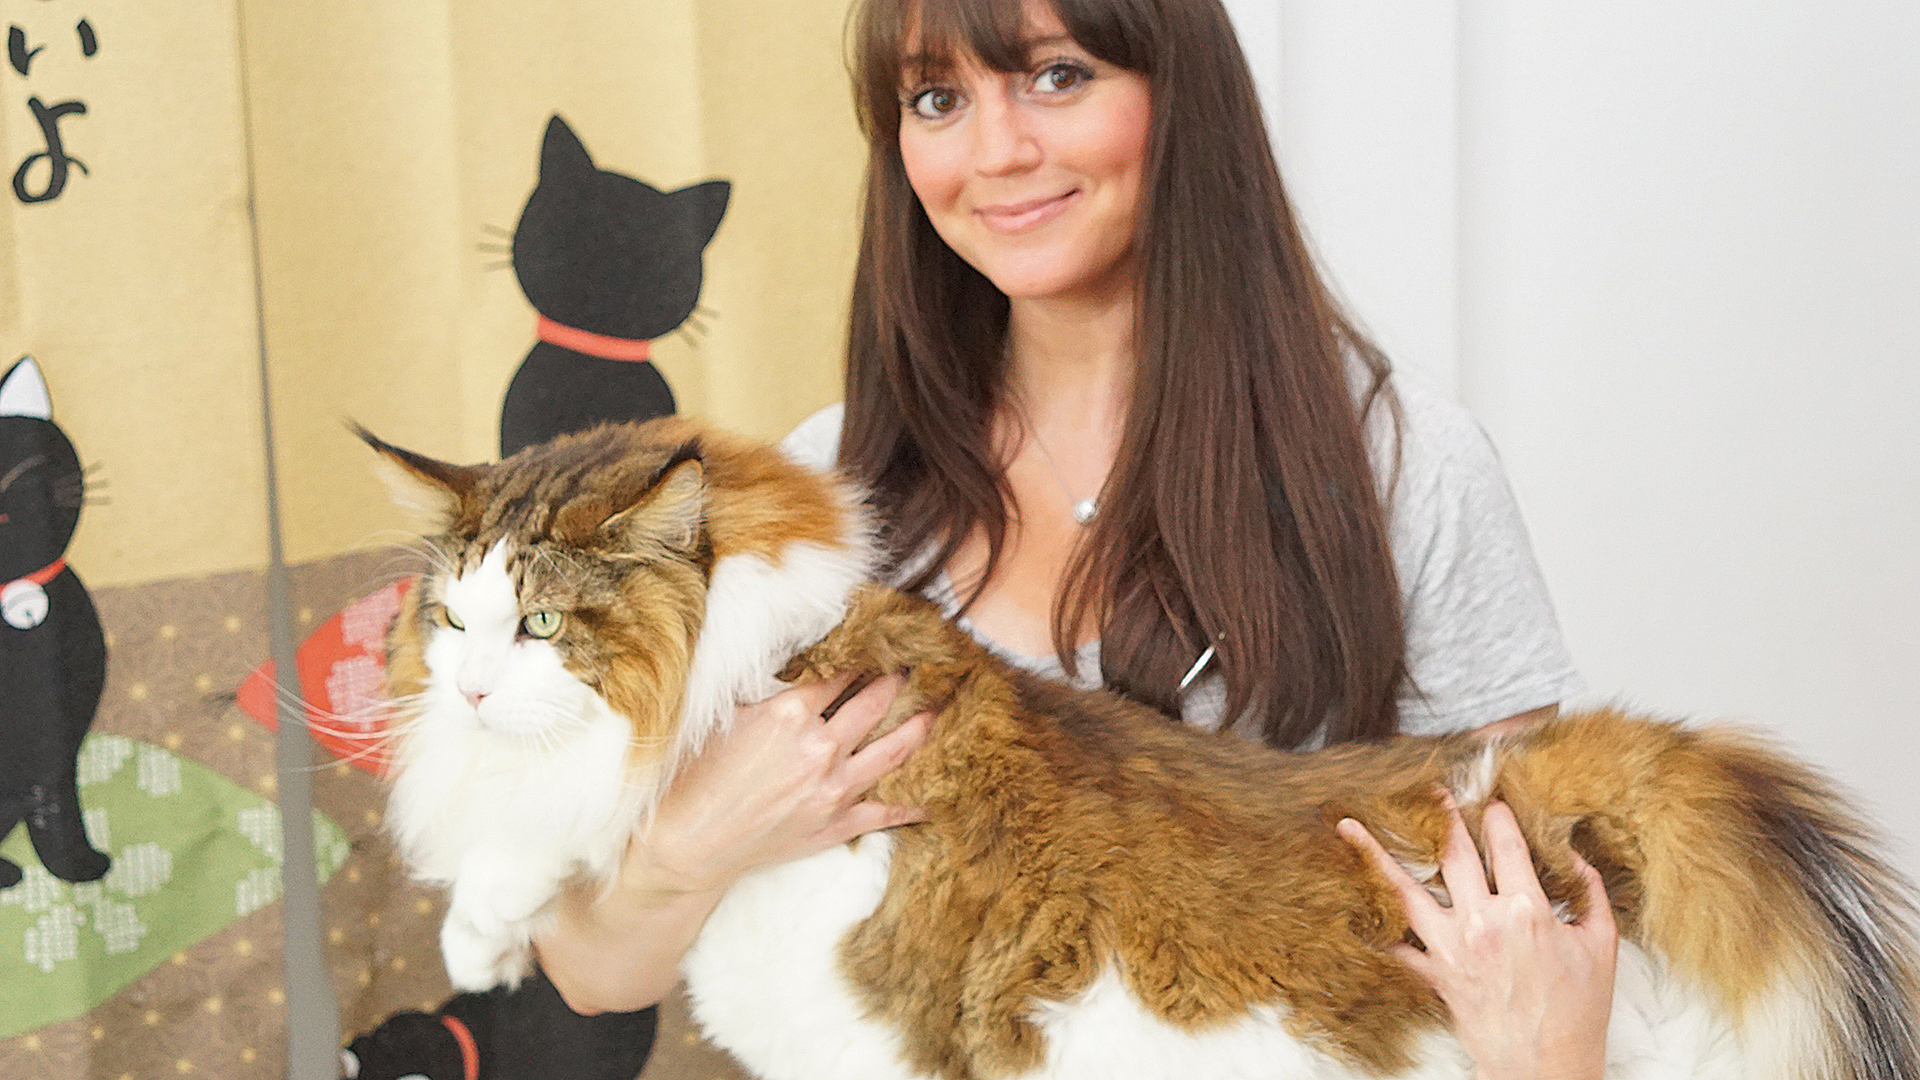 samson the cat billed as largest feline in new york at 28 pounds 4 feet biggest house cat in the world guinness - Biggest Cat In The World Guinness 2014